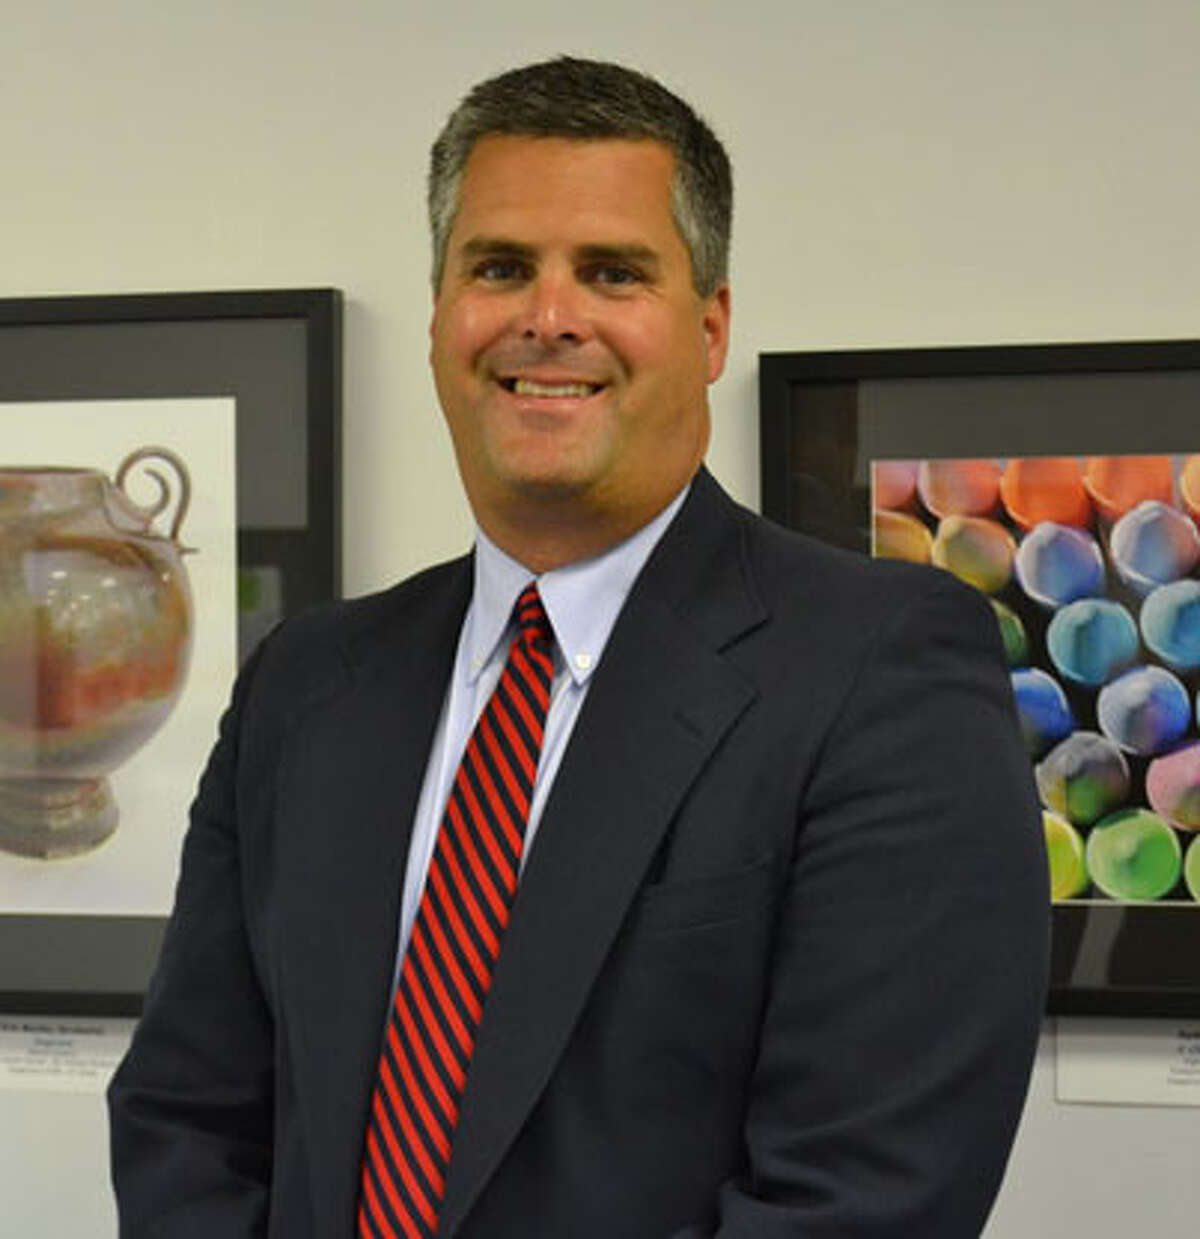 Saratoga Springs Superintendent Michael Patton